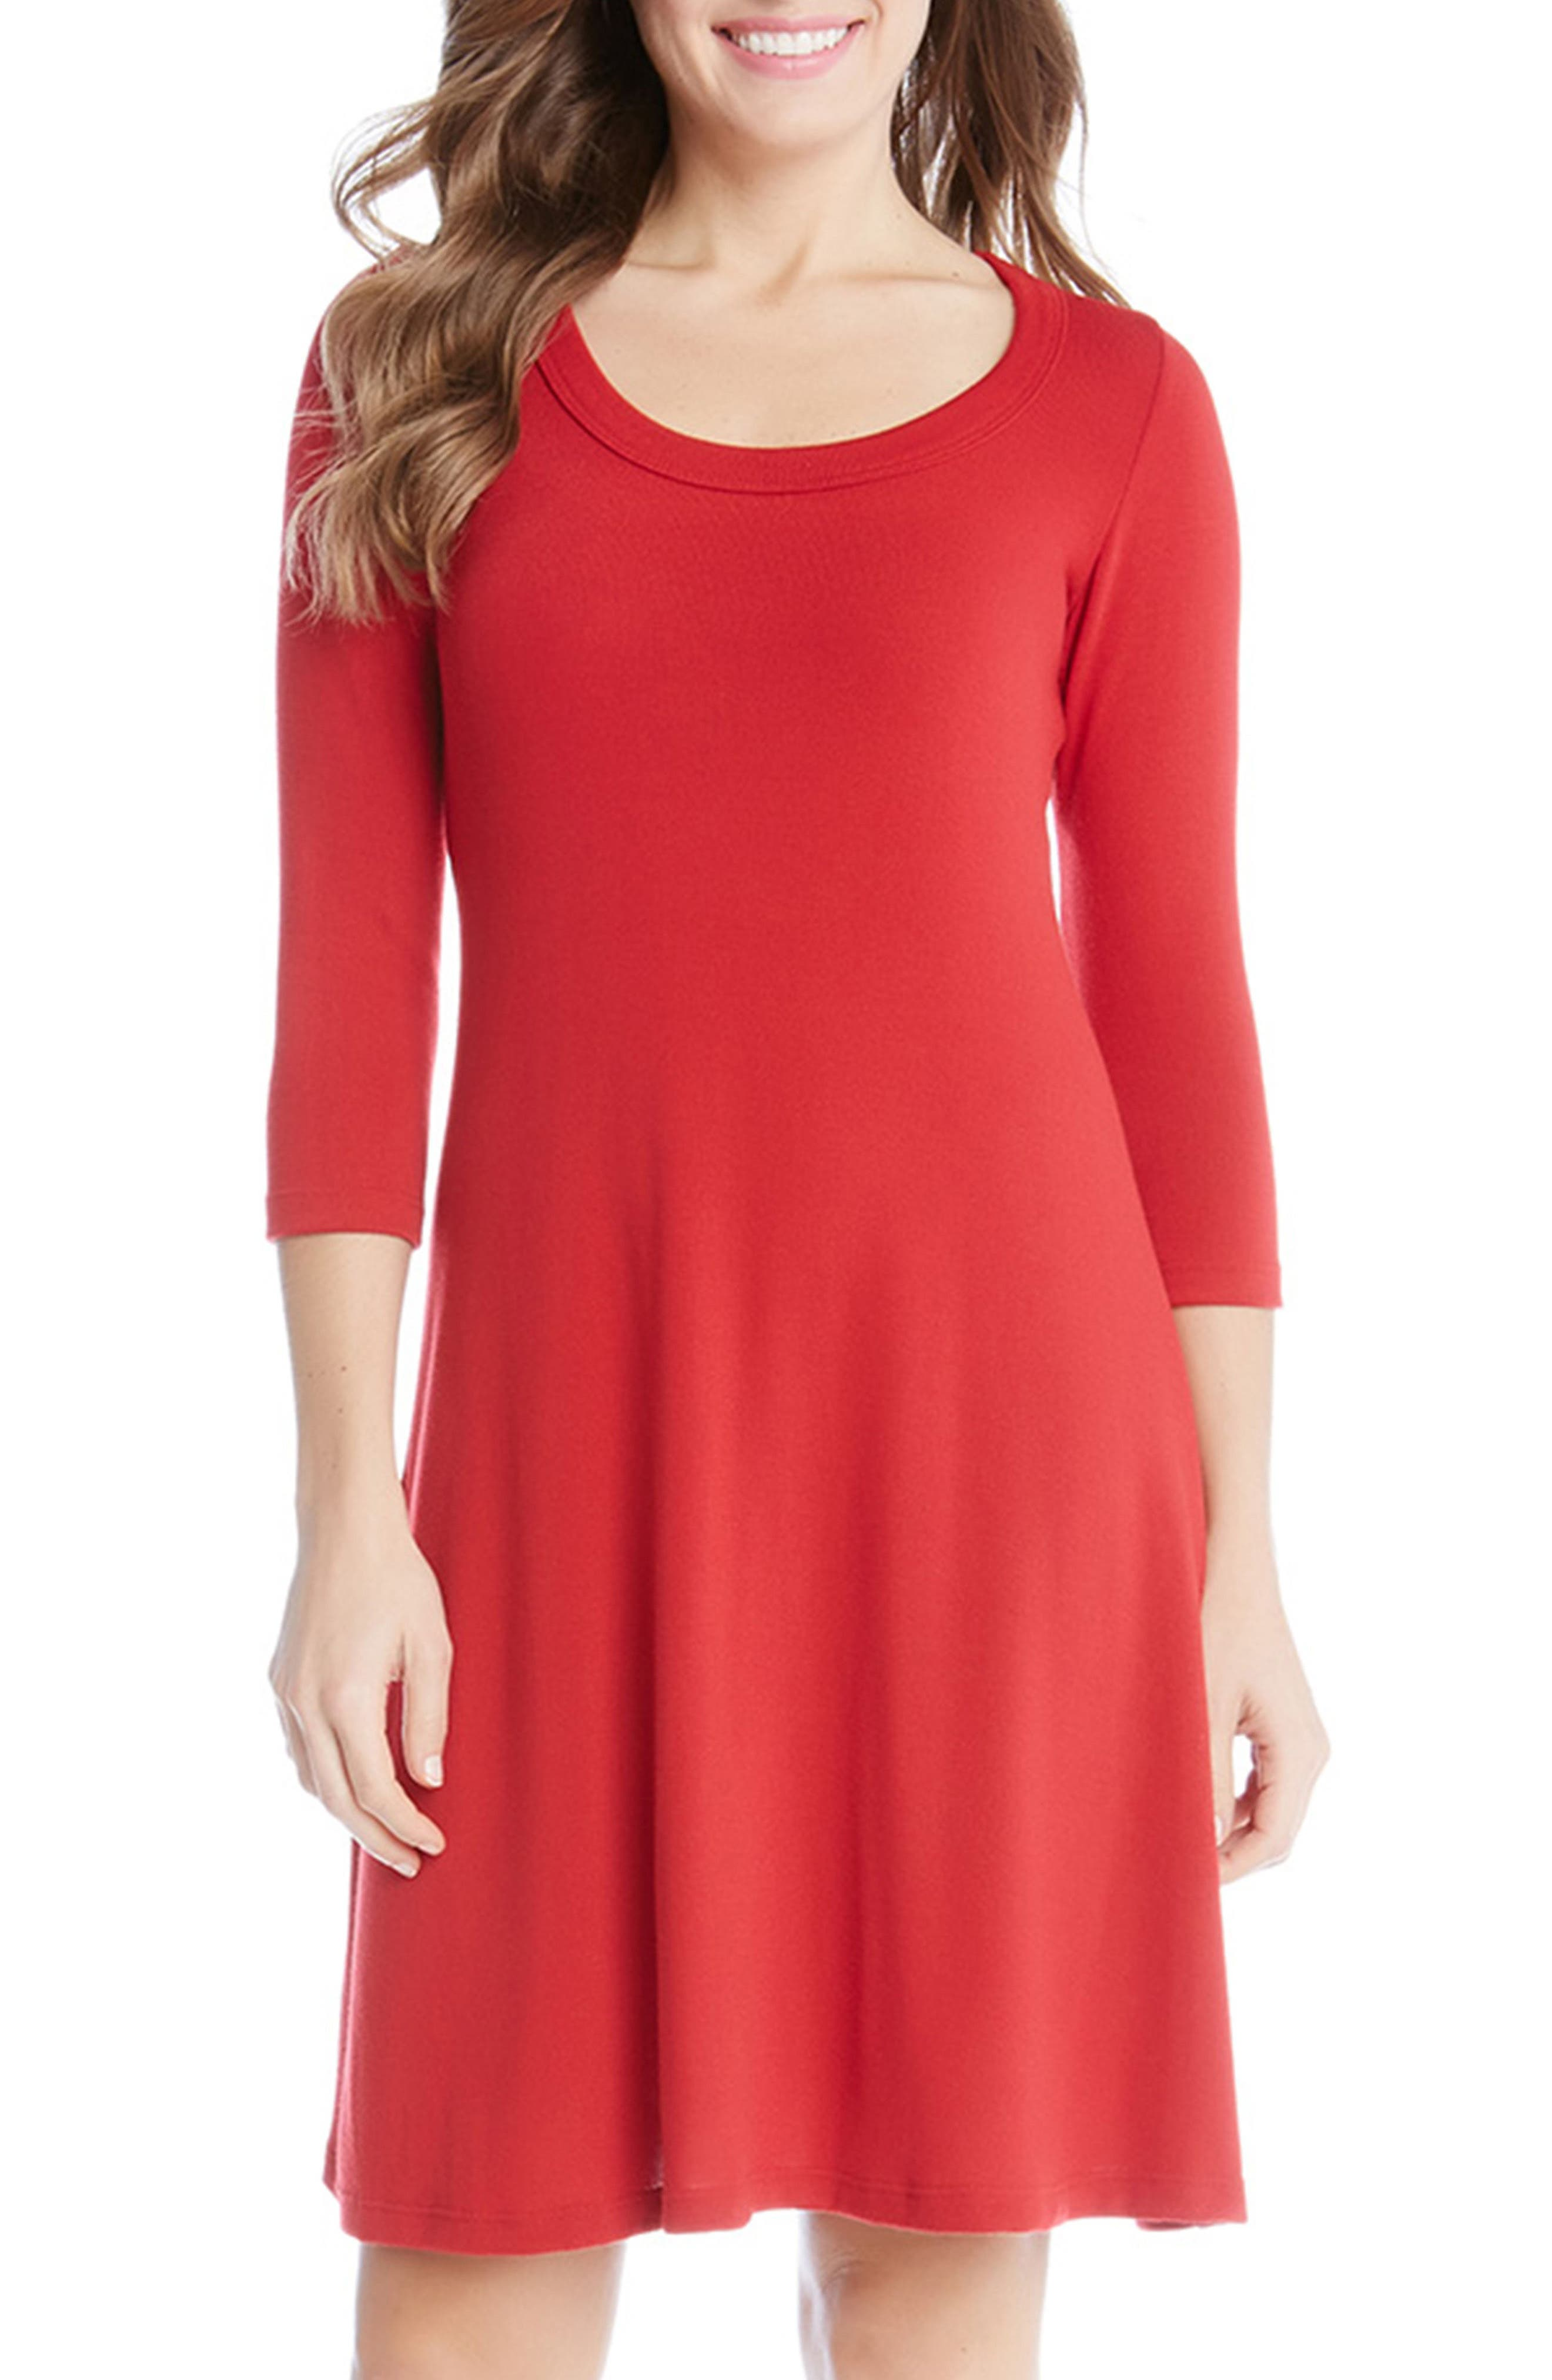 A-Line Sweater Dress,                             Main thumbnail 1, color,                             Red